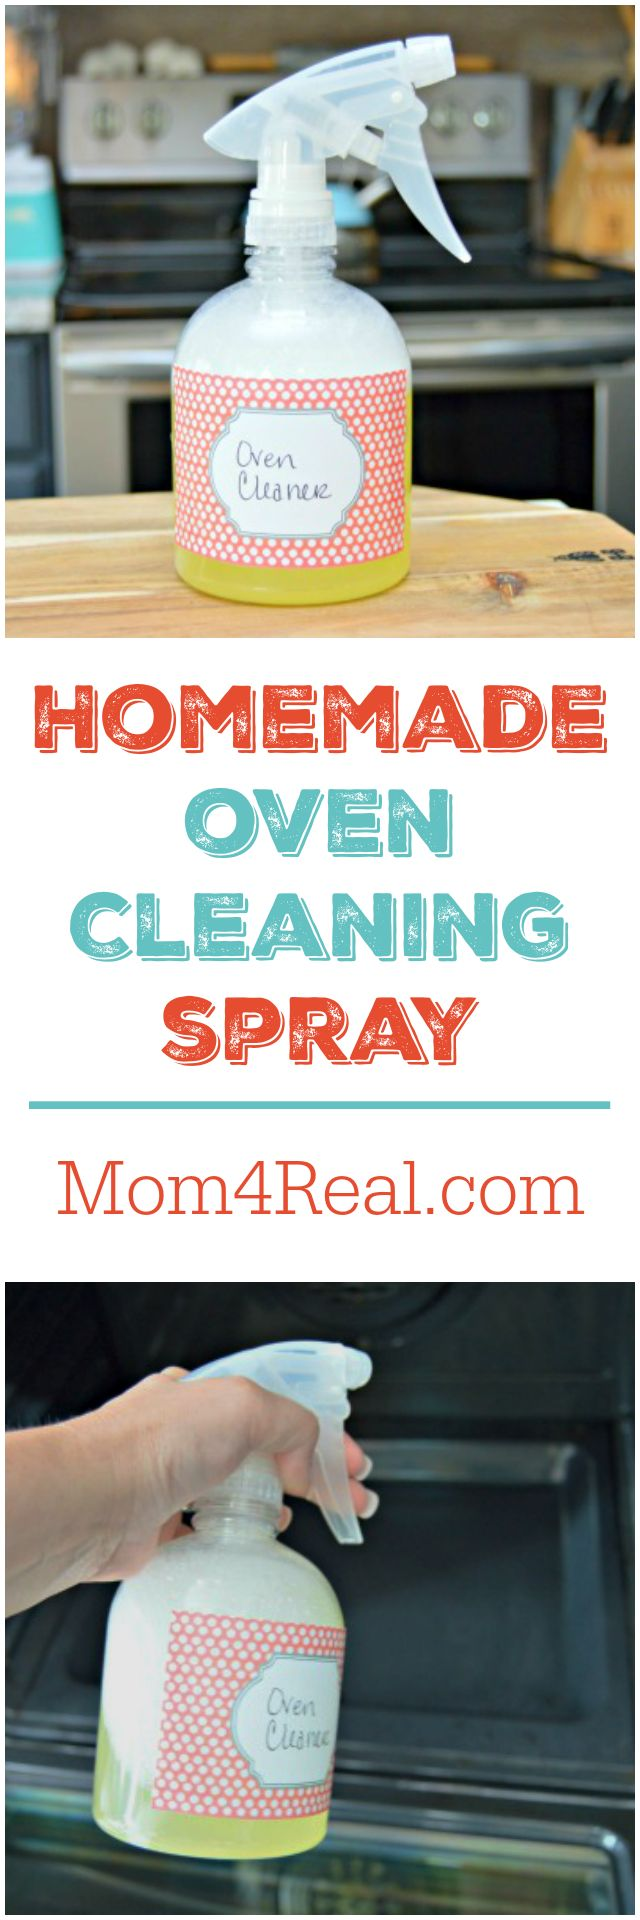 Dirty oven? This homemade oven cleaning spray will help remove any burned on foods, buildup and grime from your…